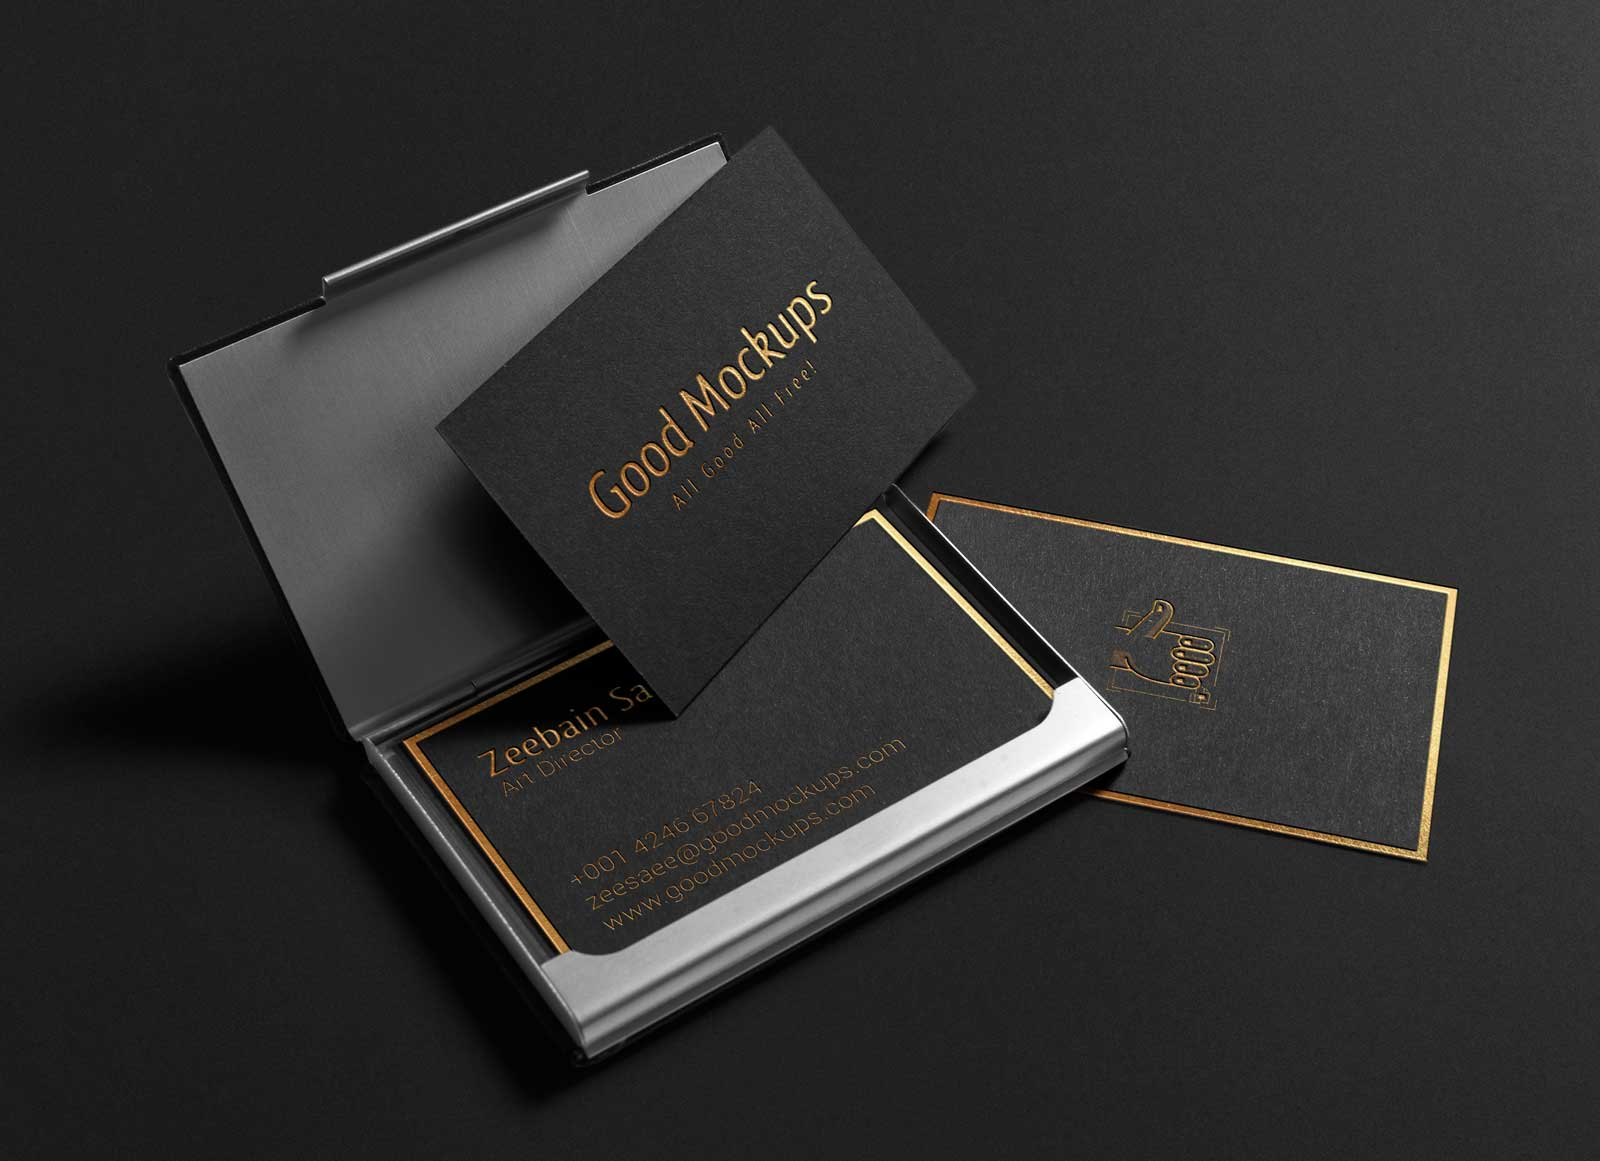 Free black with gold foil lettering business card mockup psd good free black business card mockup psd reheart Gallery